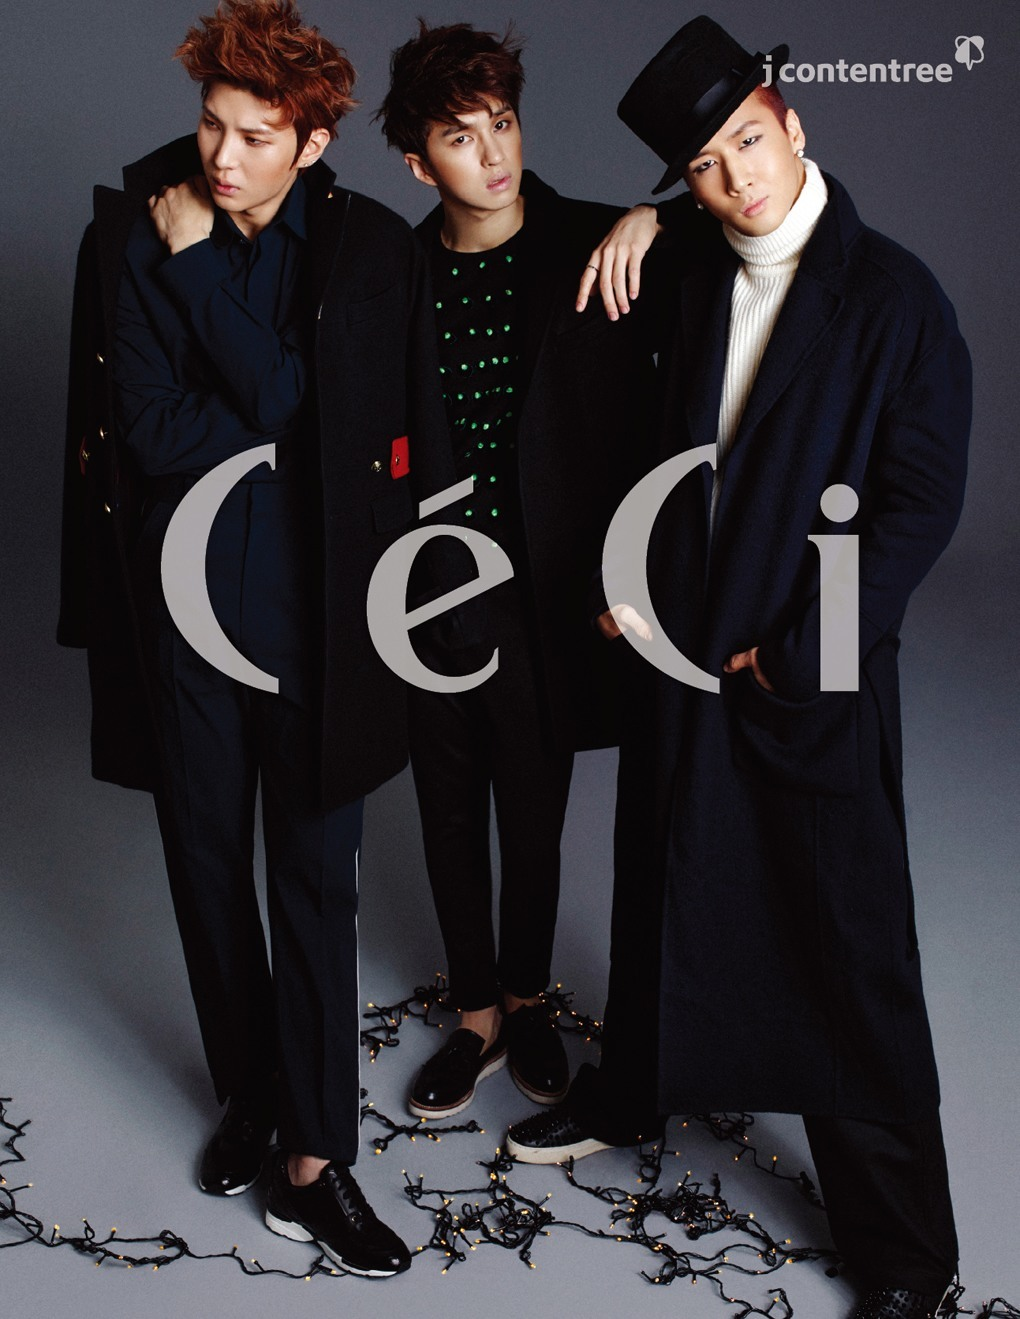 VIXX for Ceci Magazine